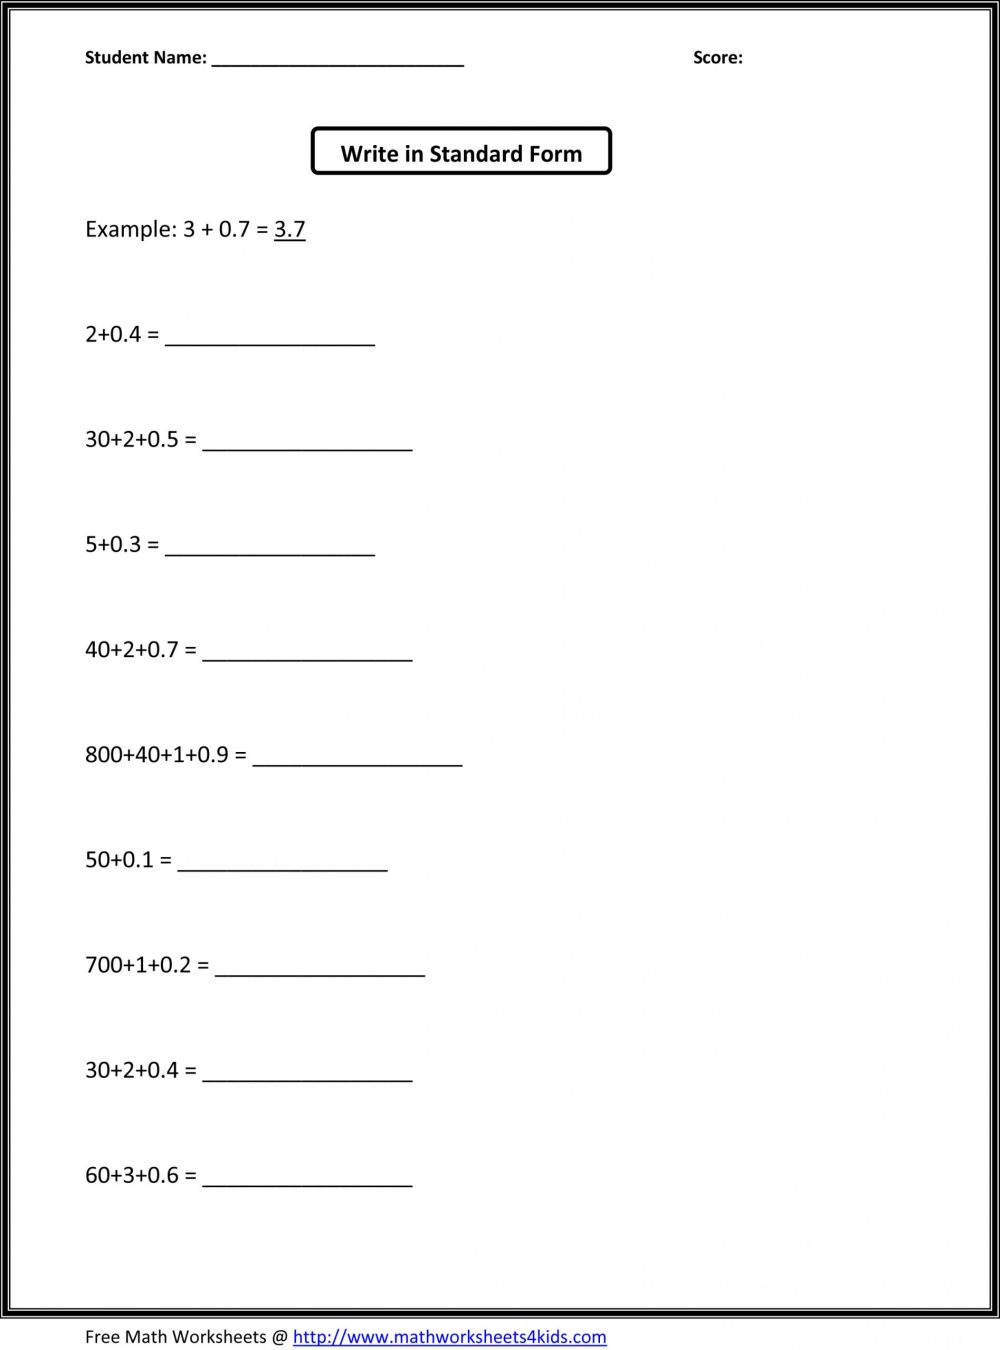 medium resolution of 5 Free Math Worksheets Fourth Grade 4 Addition Adding whole Hundreds 3  Addends - apocalomegaproductions.com